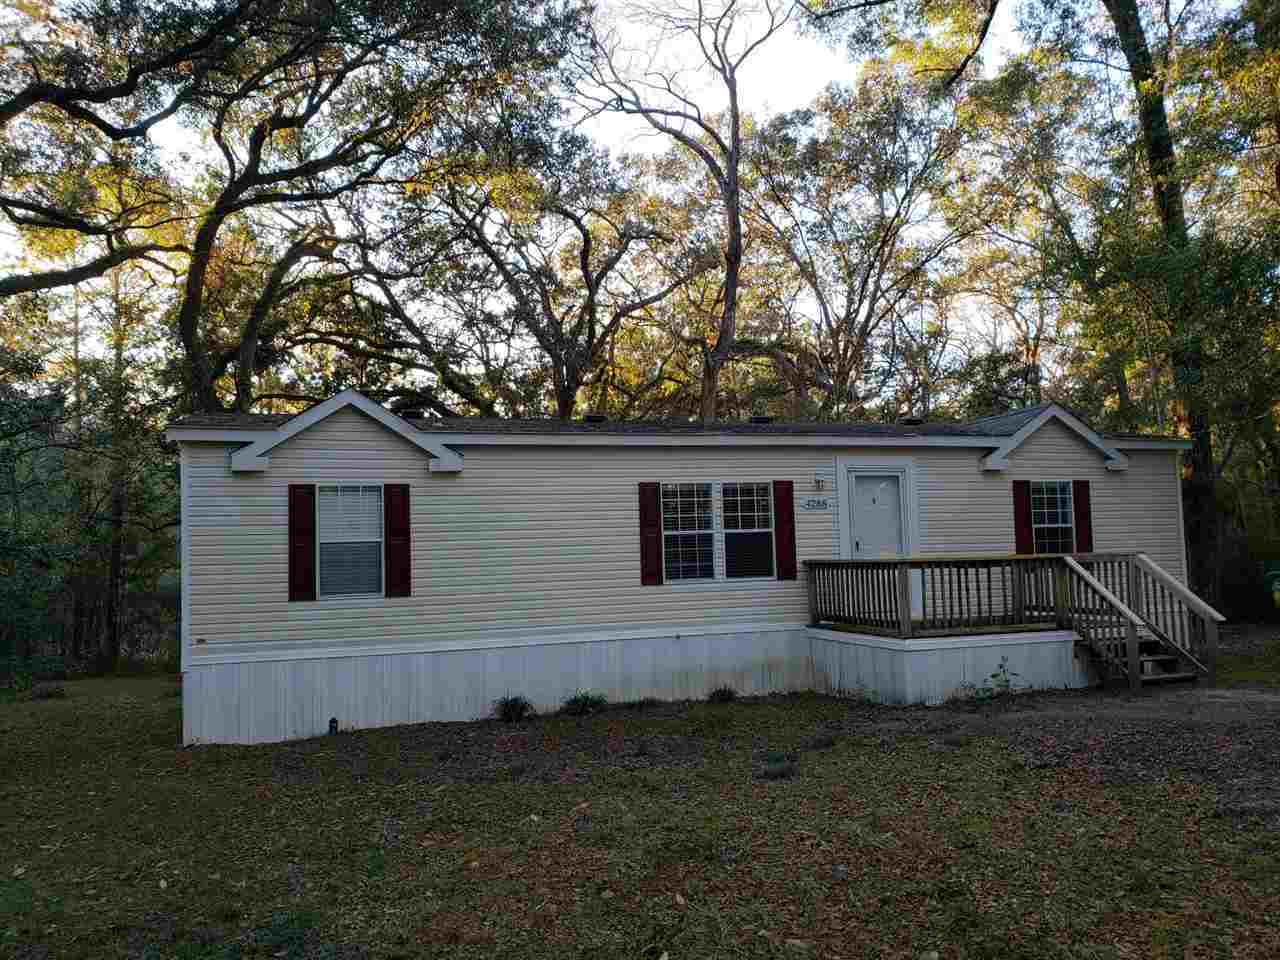 $86,000 - 3Br/2Ba -  for Sale in Pine Lakes, Tallahassee